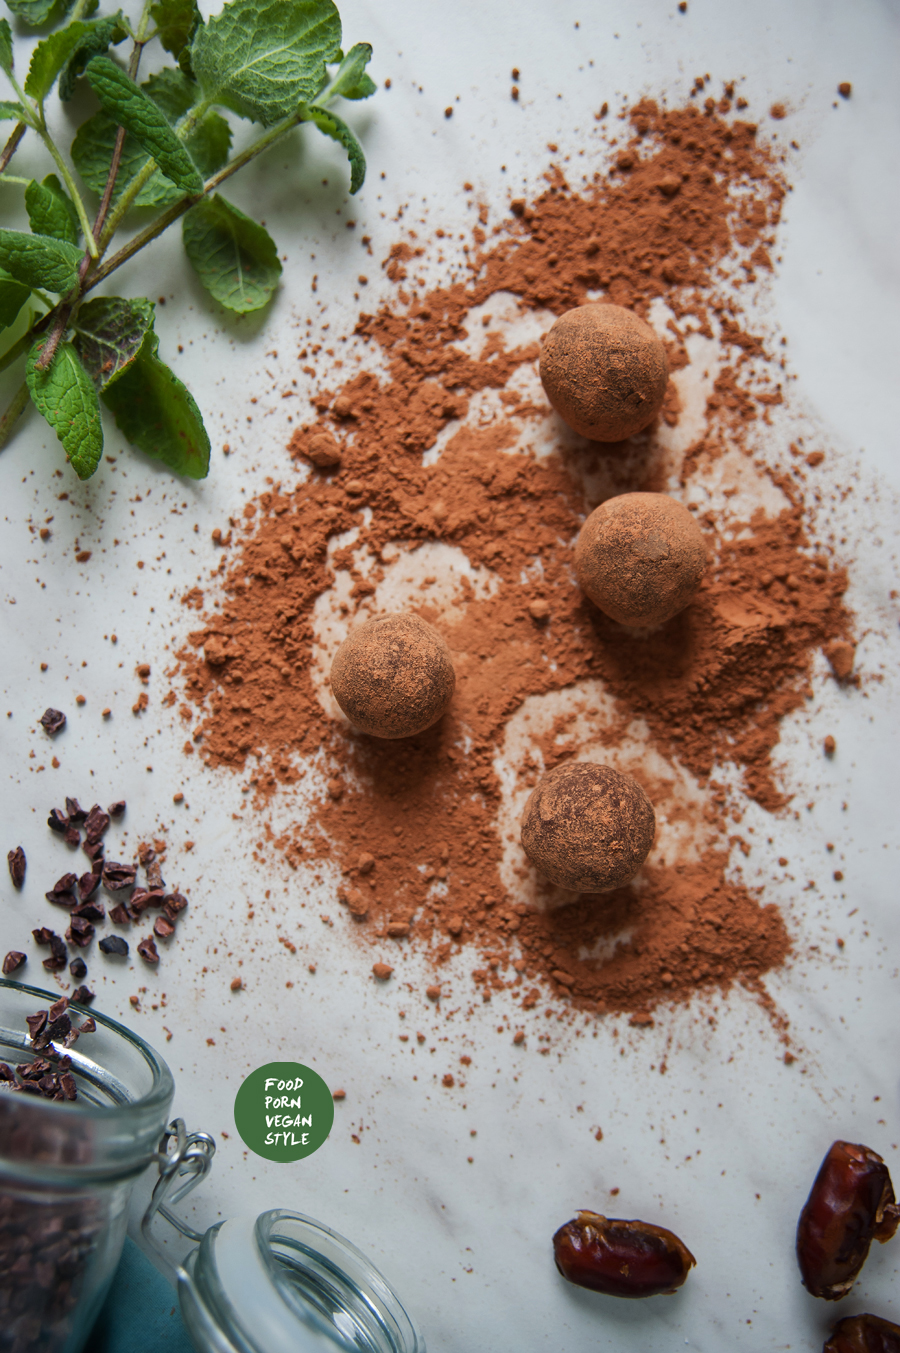 Chocolate truffles with mint / Trufle czekoladowe z miętą